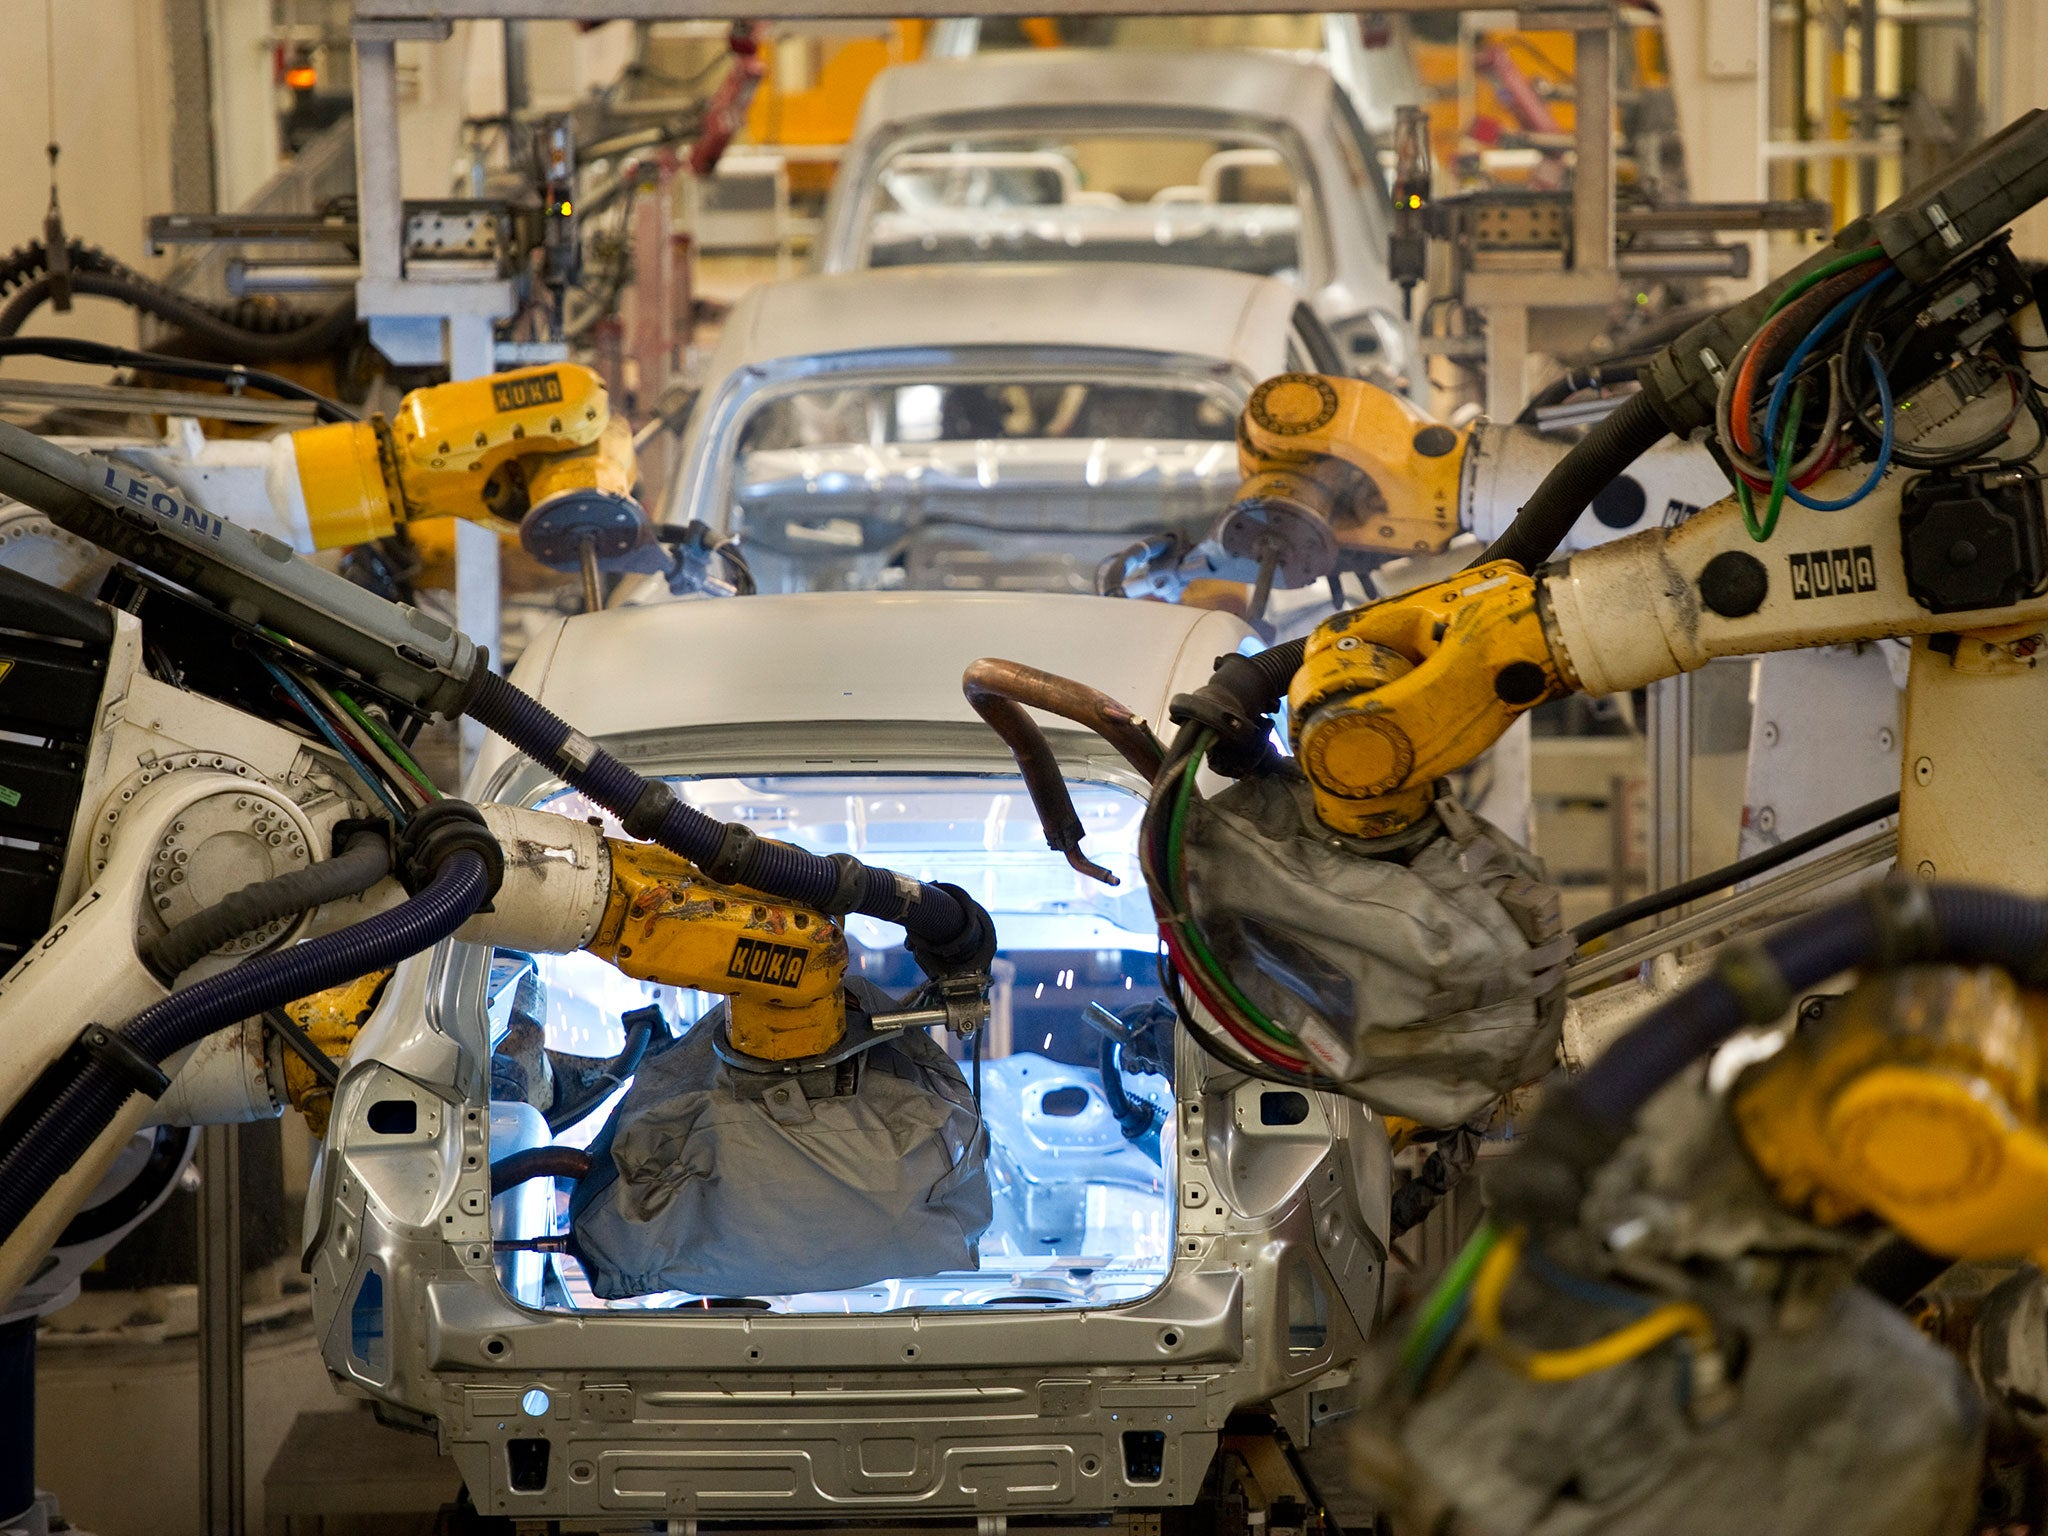 Worker Killed By Robot At Volkswagen Car Factory The